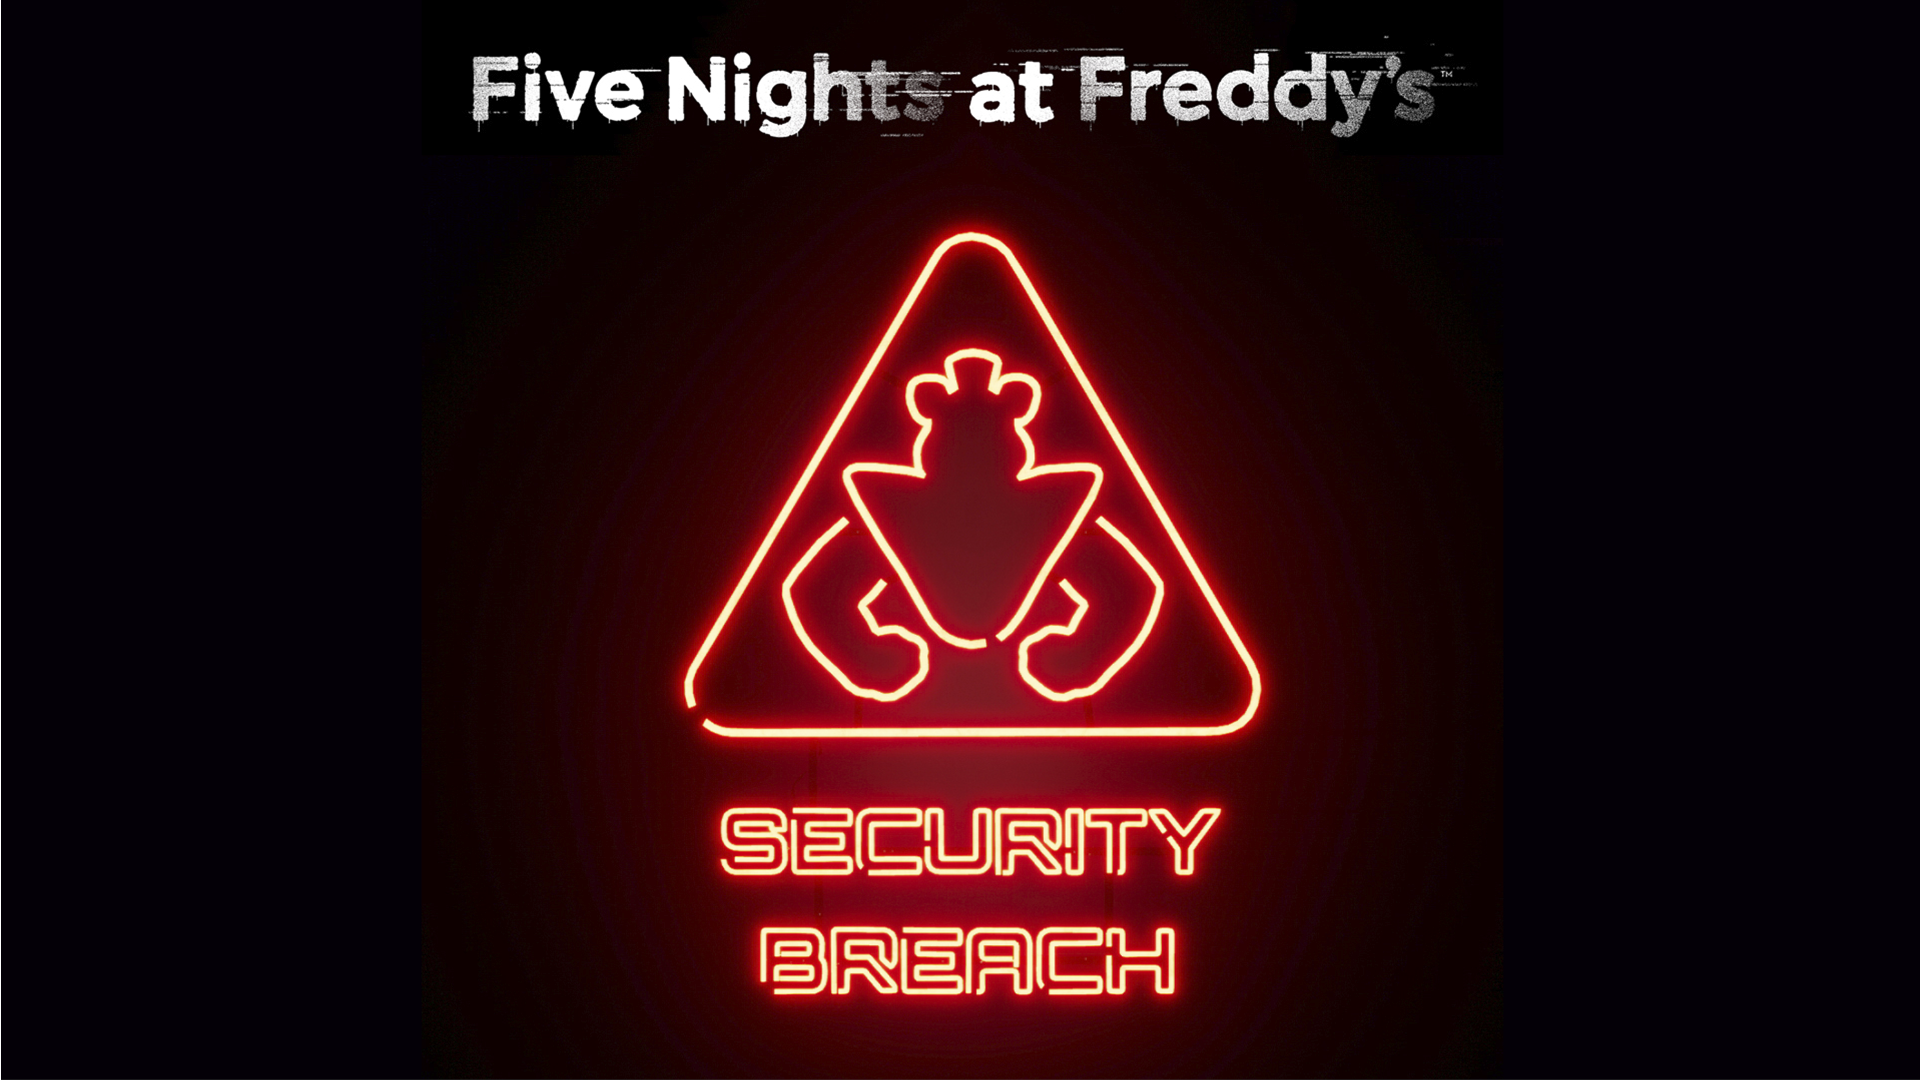 Five Nights at Freddy's: Security Breach – material promoțional